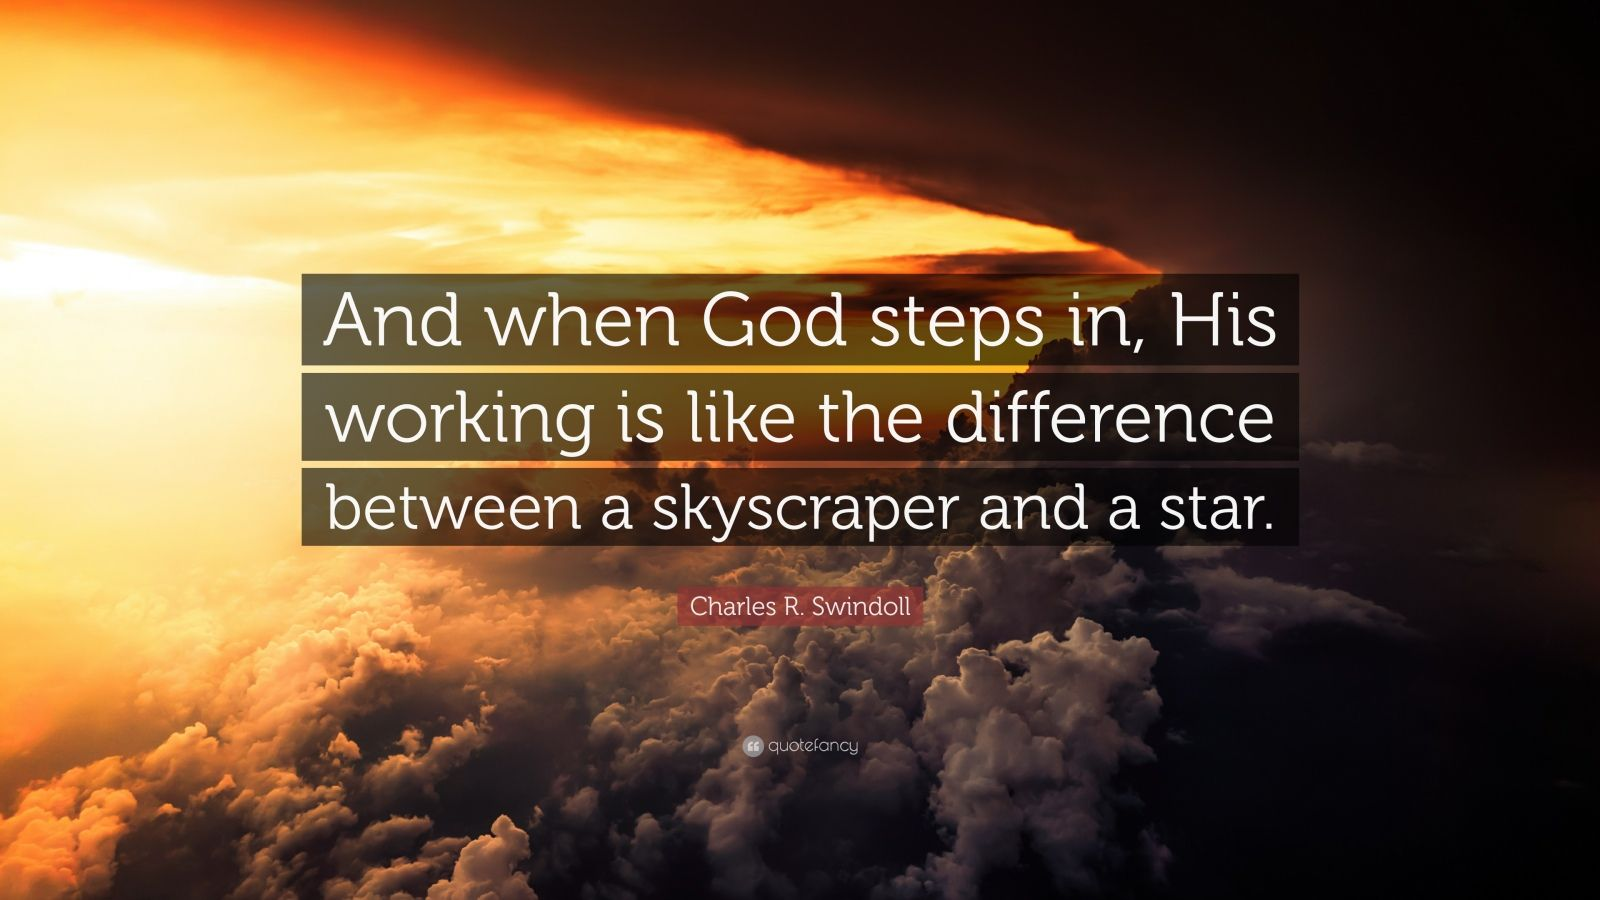 """Charles R. Swindoll Quote: """"And when God steps in, His working is like the difference between a skyscraper and a star."""""""